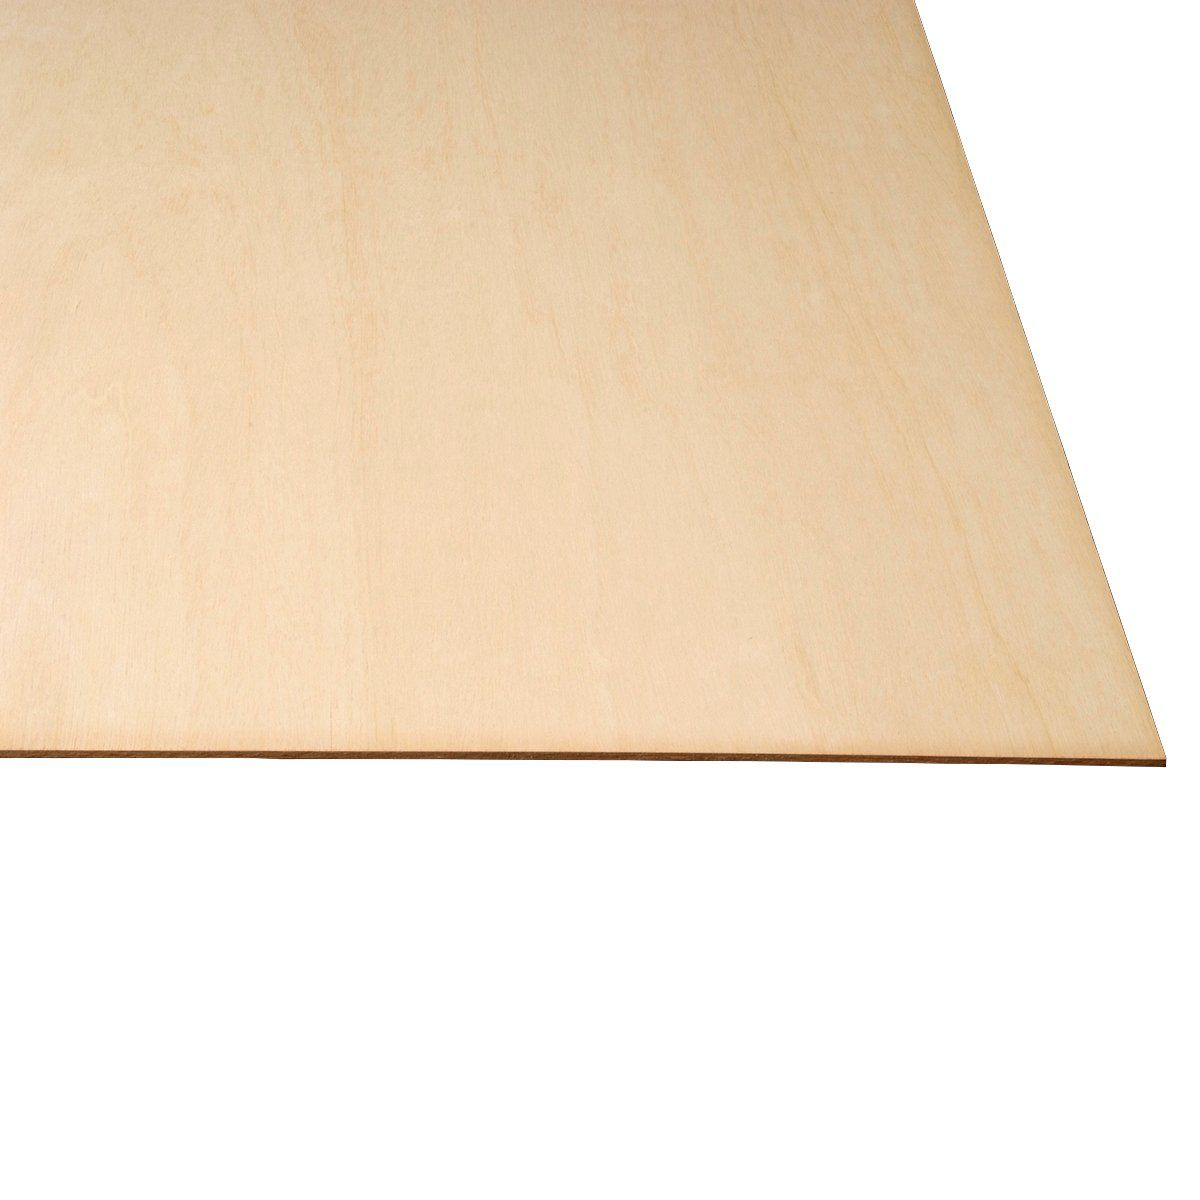 12mm Sande Plywood 1 2 In Category X 4 Ft X 8 Ft Actual 0 472 In X 48 In X 96 In 454532 The Home Depot Hardwood Plywood Plywood Plywood Design